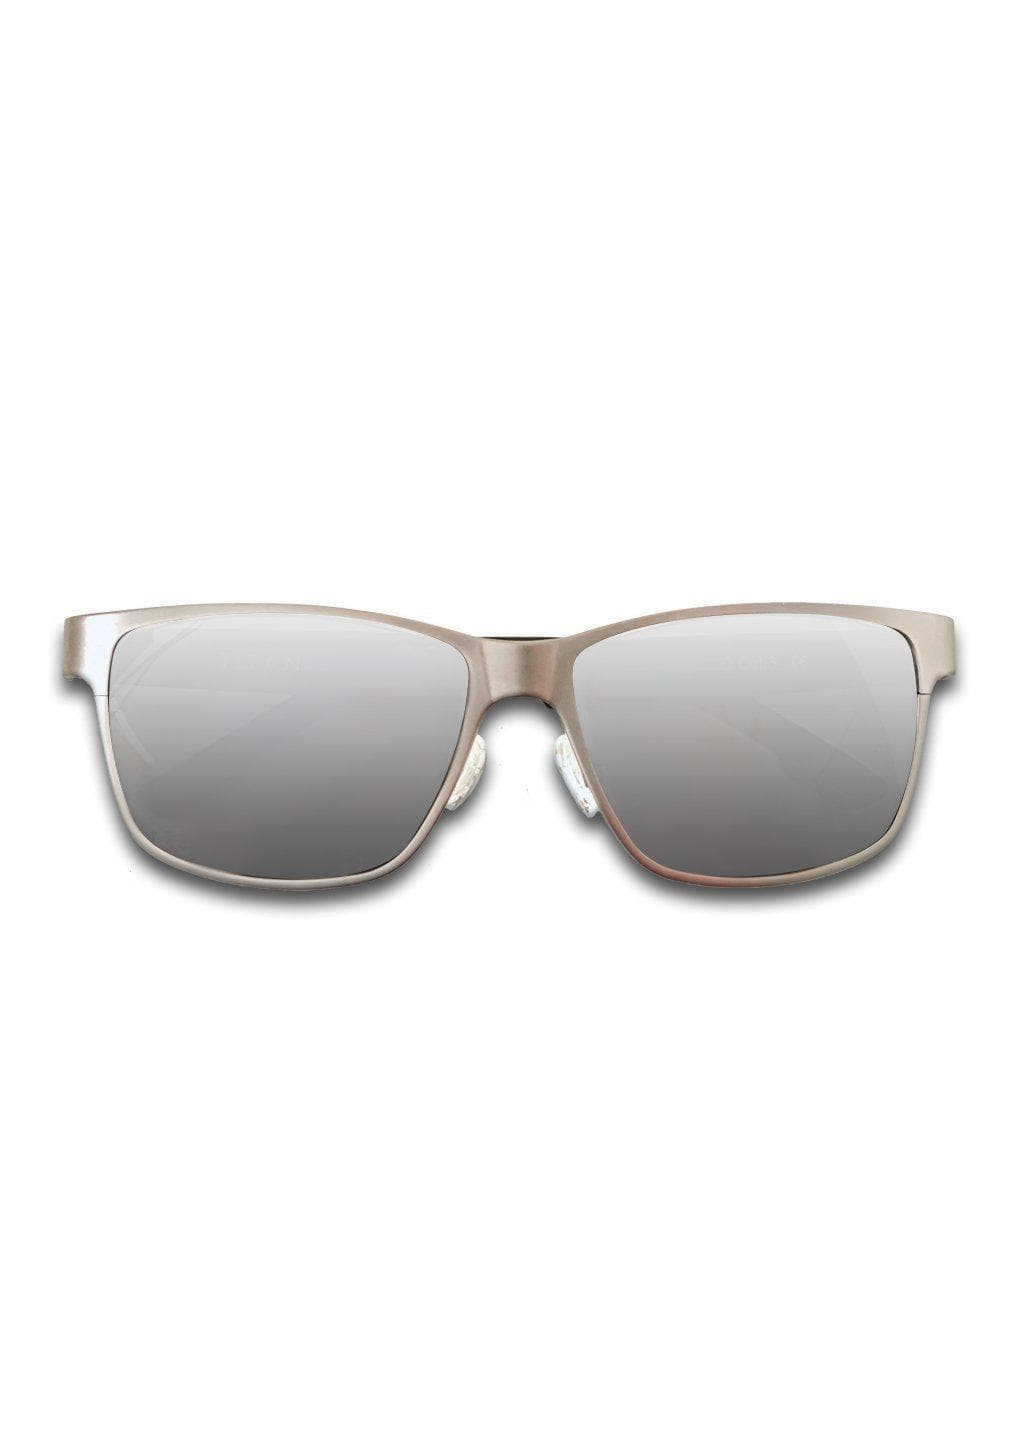 Titanium Wayfarer Sunglasses - TITAN - Gun Metal - With grey lenses.